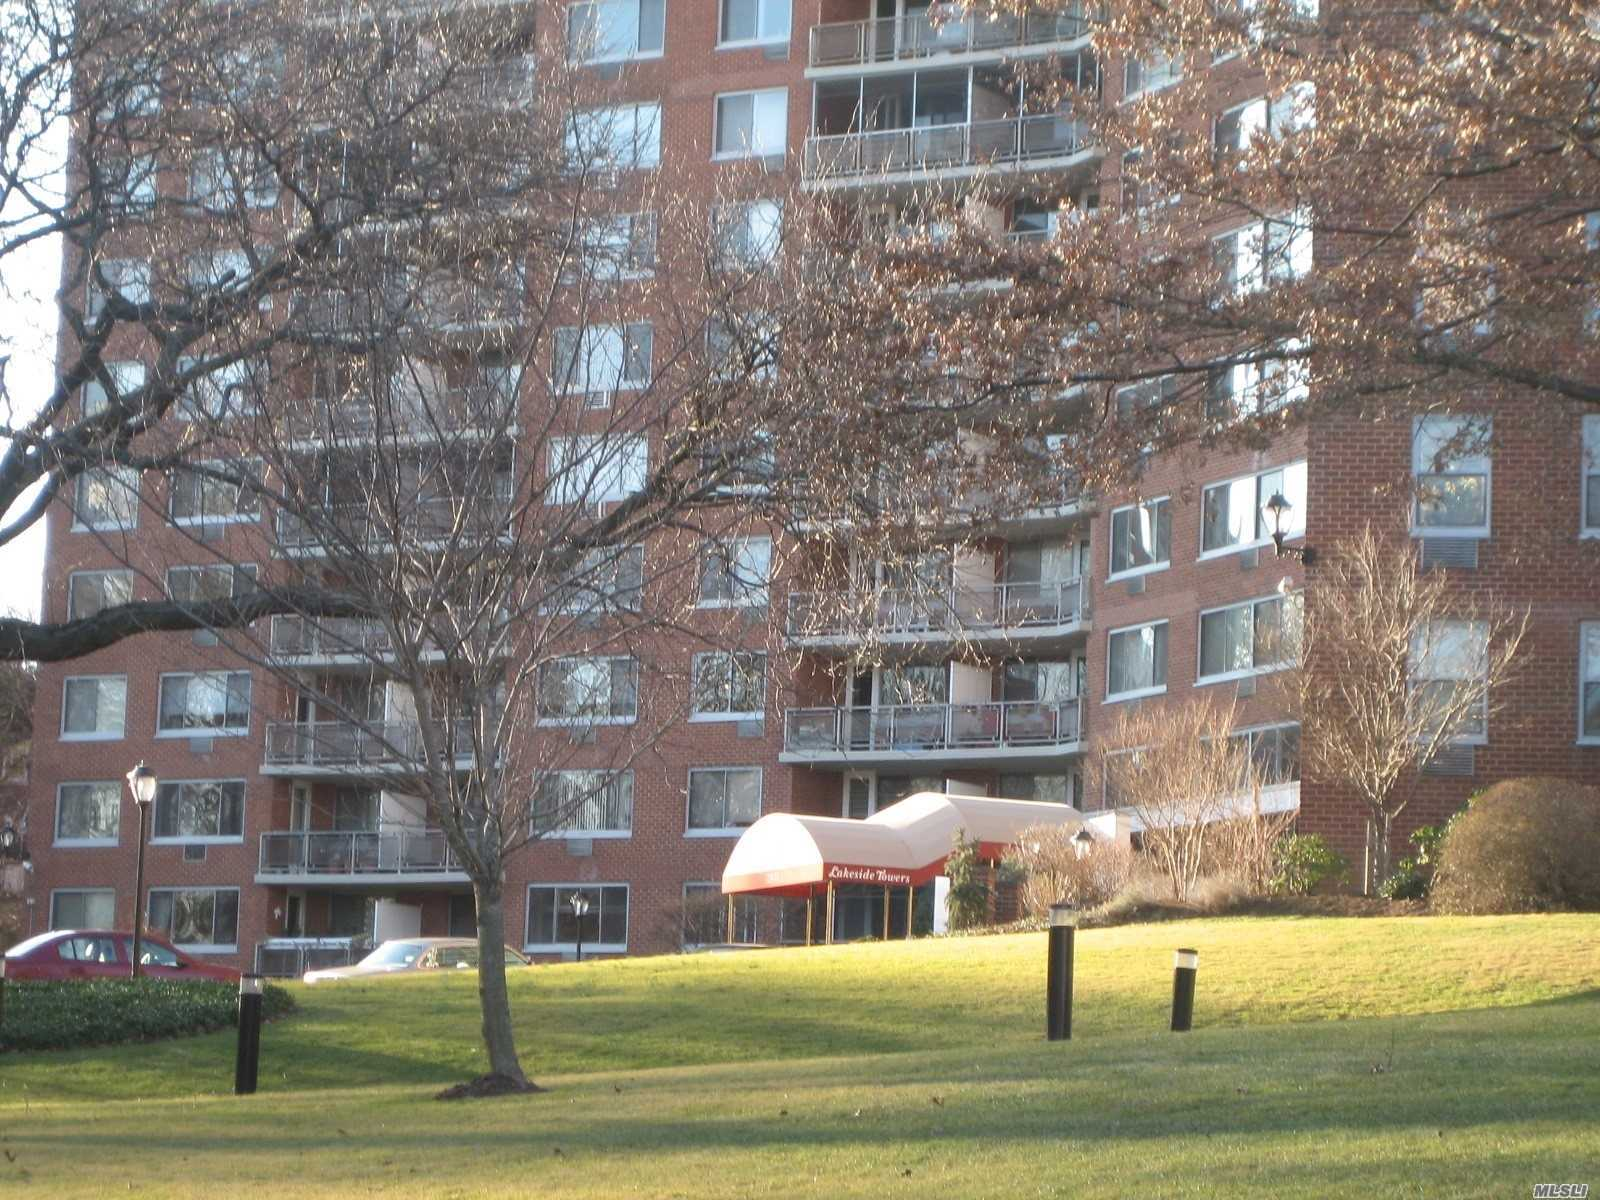 Deluxe Co-Op Building, Large One Bedroom, Entry Foyer, Living Room/Dining Room, Renovated Kitchen, Renovated Full Bath, Terrace,  24Hr Doorman. Pool, Gym, Maintenence Includes All Utilities And Real Estate Tax, Close To Long Island Rail Road, City/Express Buses, Shops Oakland Lake